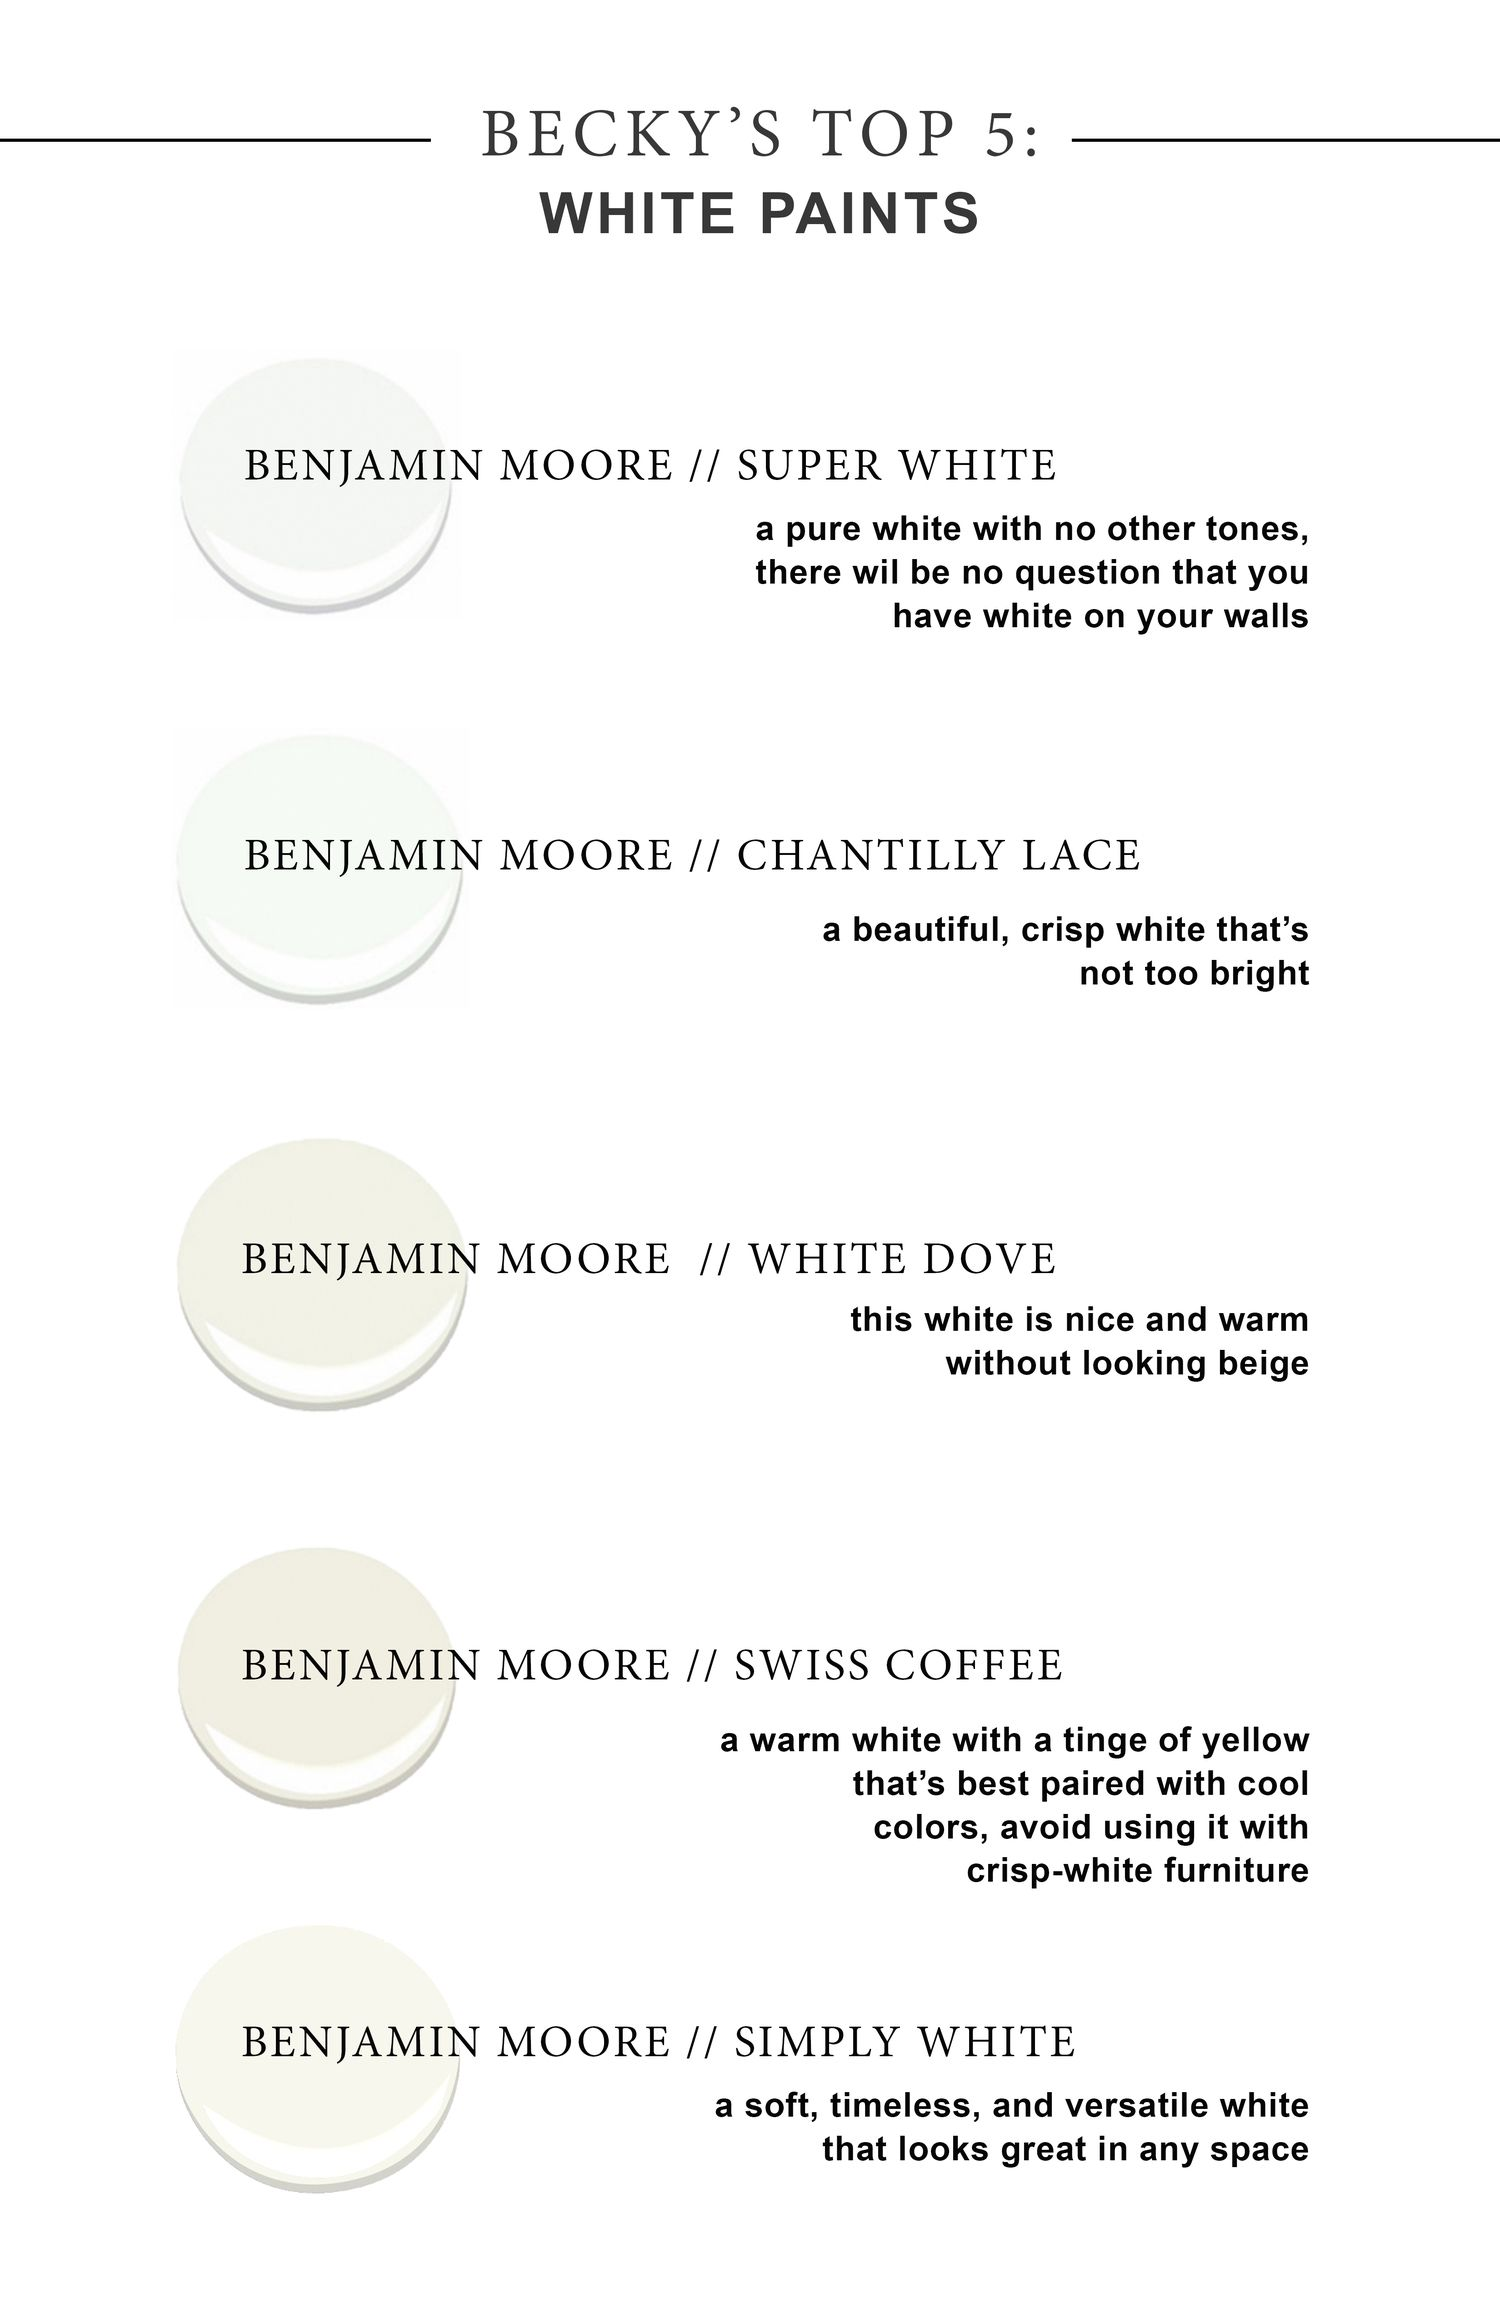 My Top 5 Favorite White Paint Colors You Just Can T Go Wrong With These Options But Always Remember To Some Cardstock Samples And See How They Look